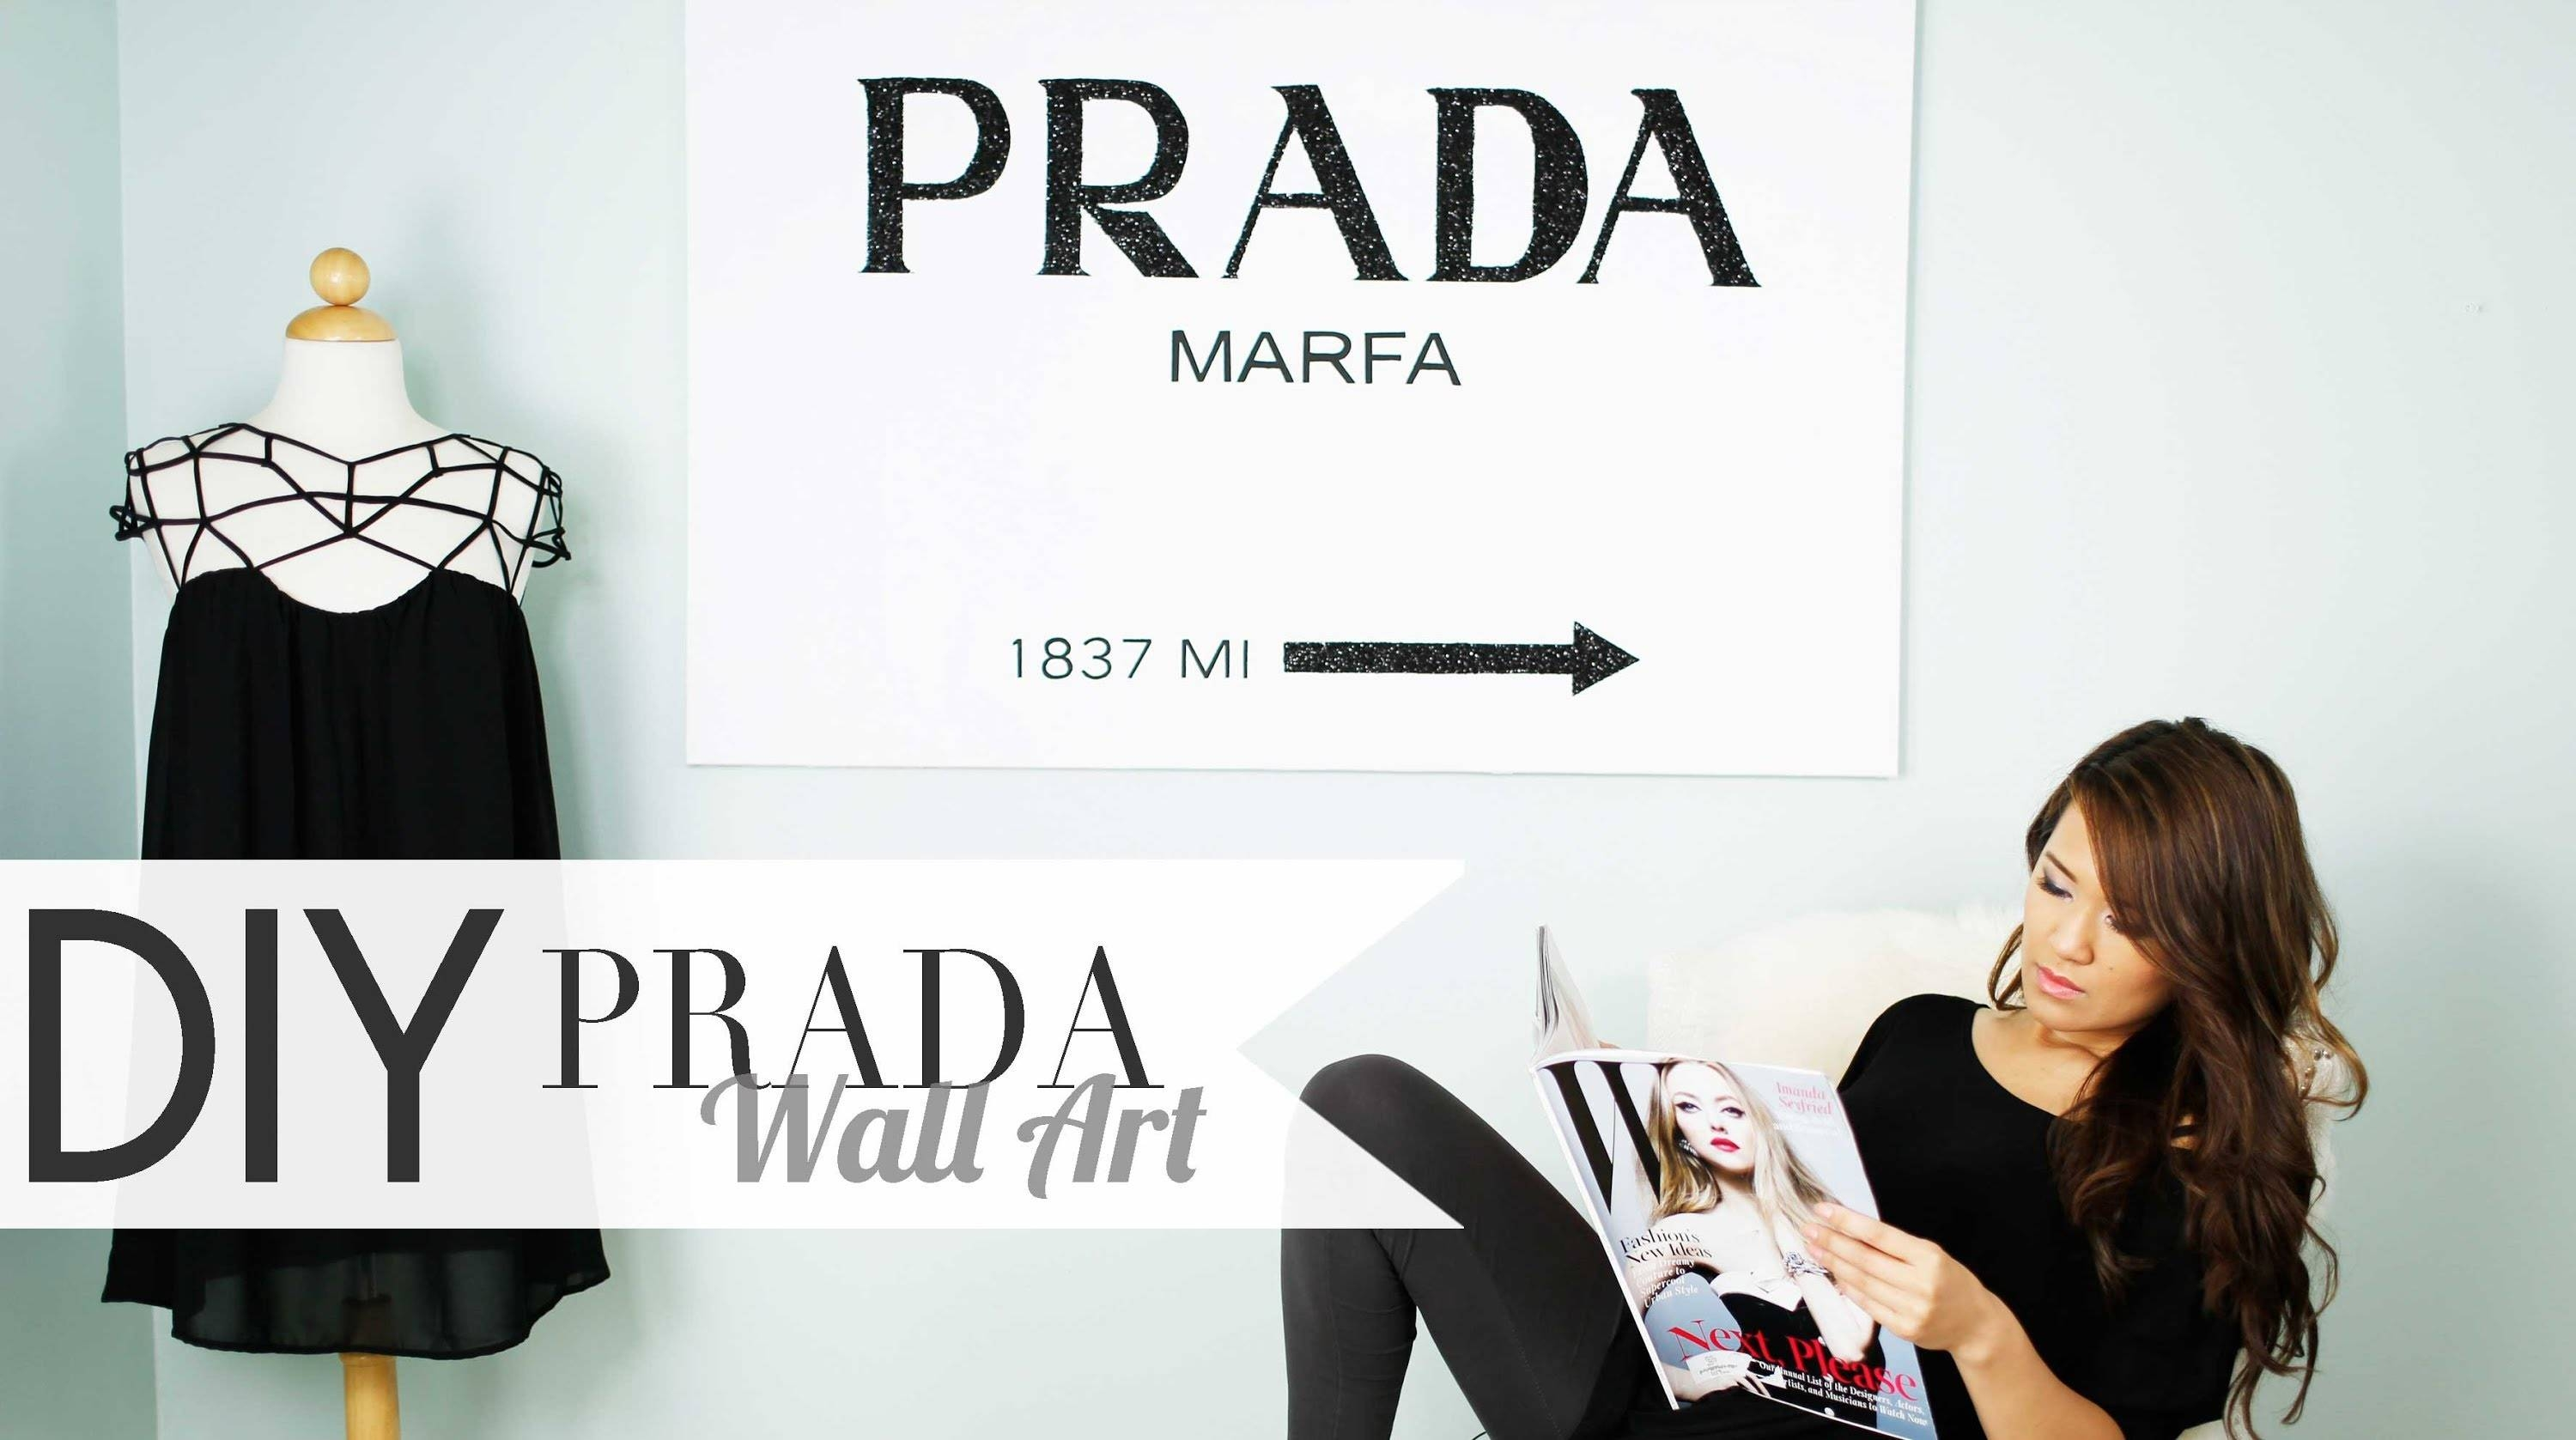 Diy Gossip Girl Prada Wall Art | Ann Le – Youtube With Best And Newest Prada Marfa Wall Art (View 3 of 25)